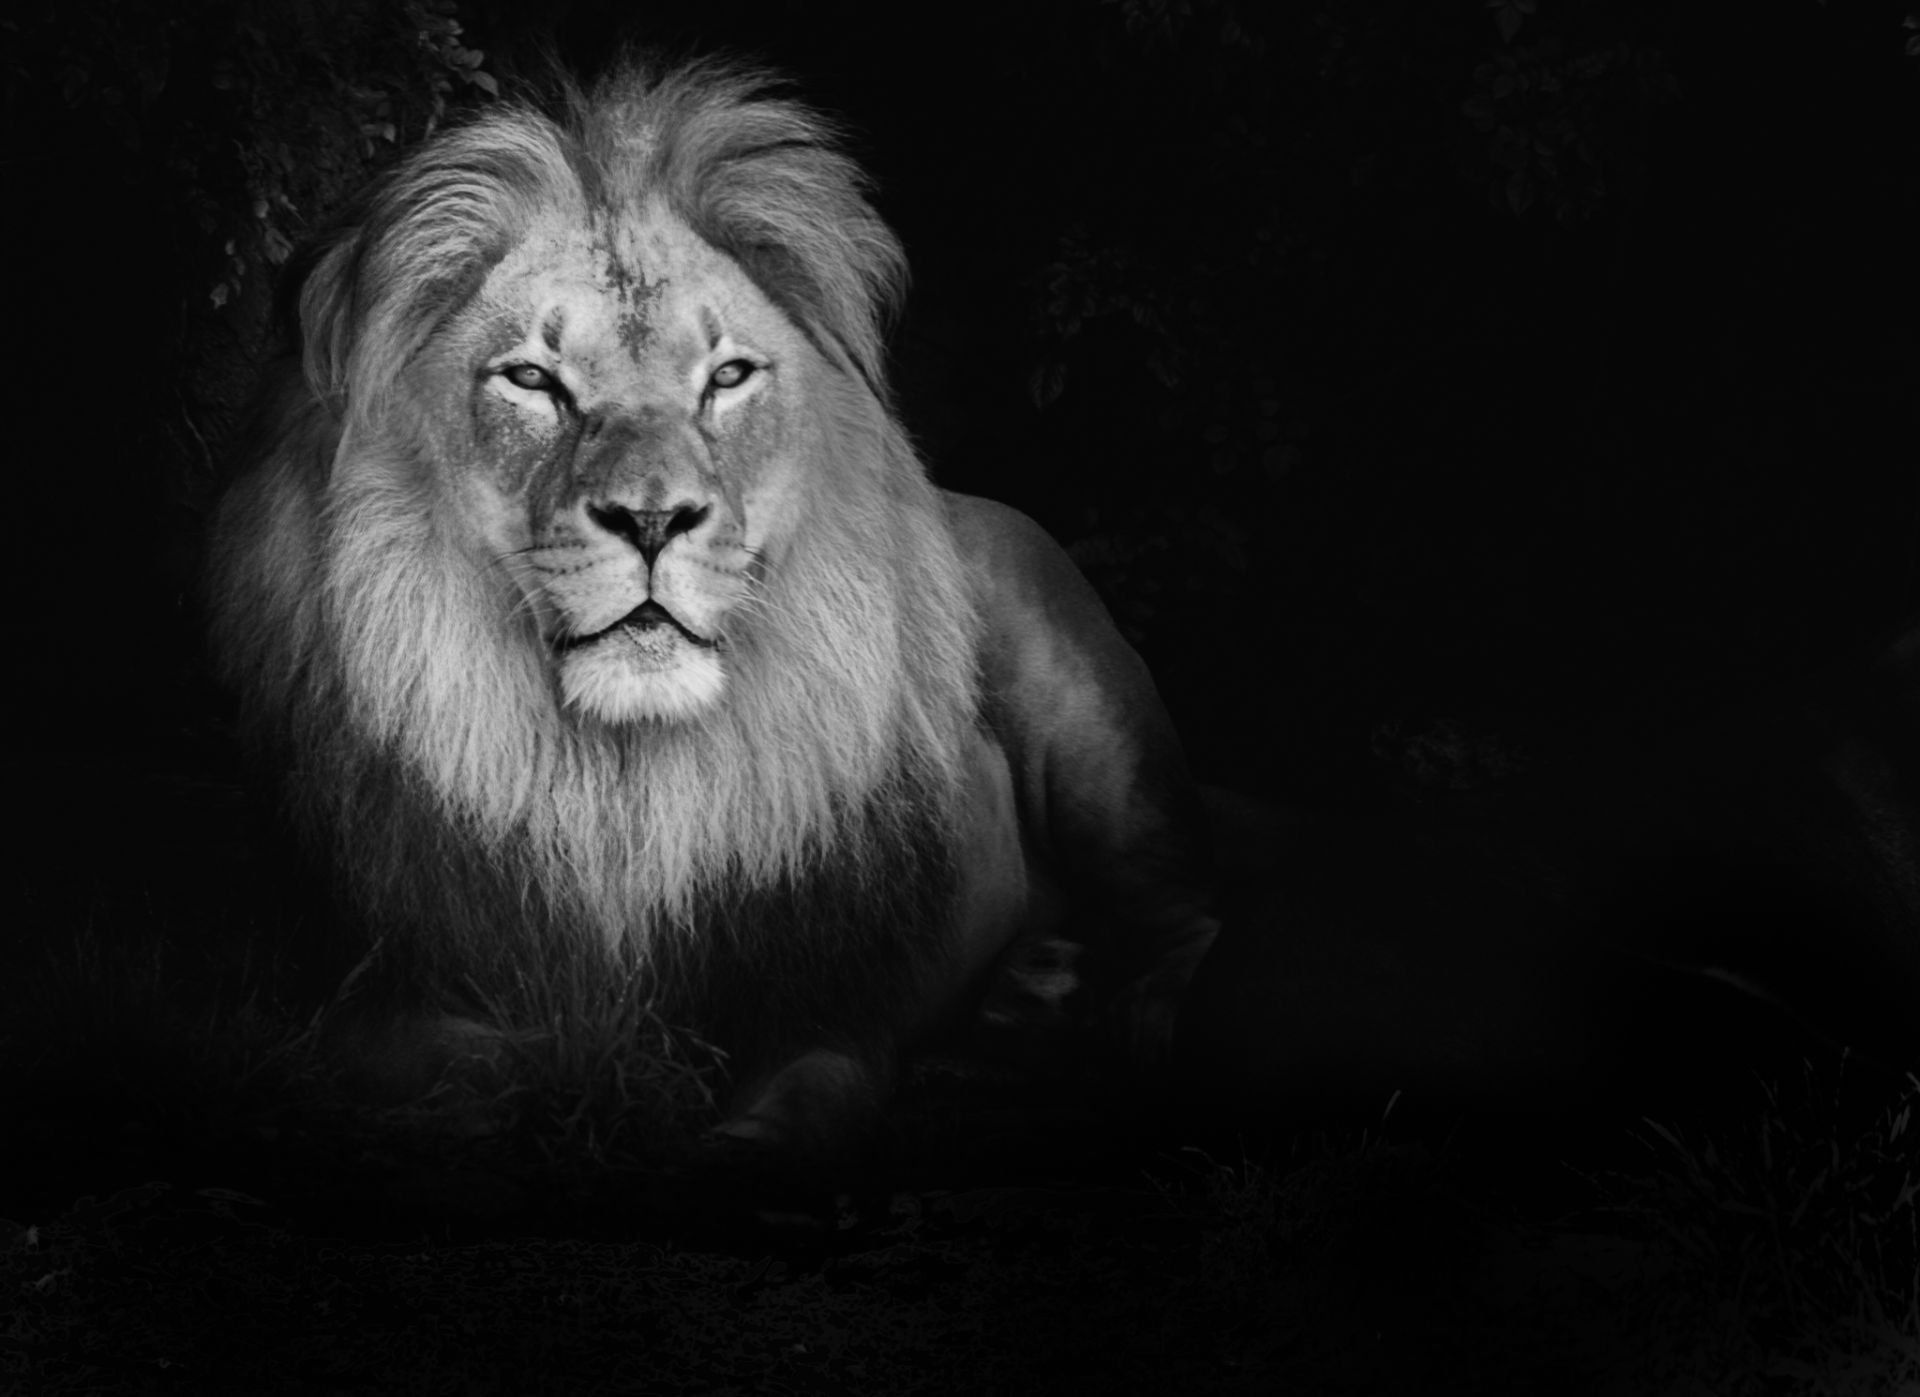 Lion Black And White Wallpapers Top Free Lion Black And White Backgrounds Wallpaperaccess